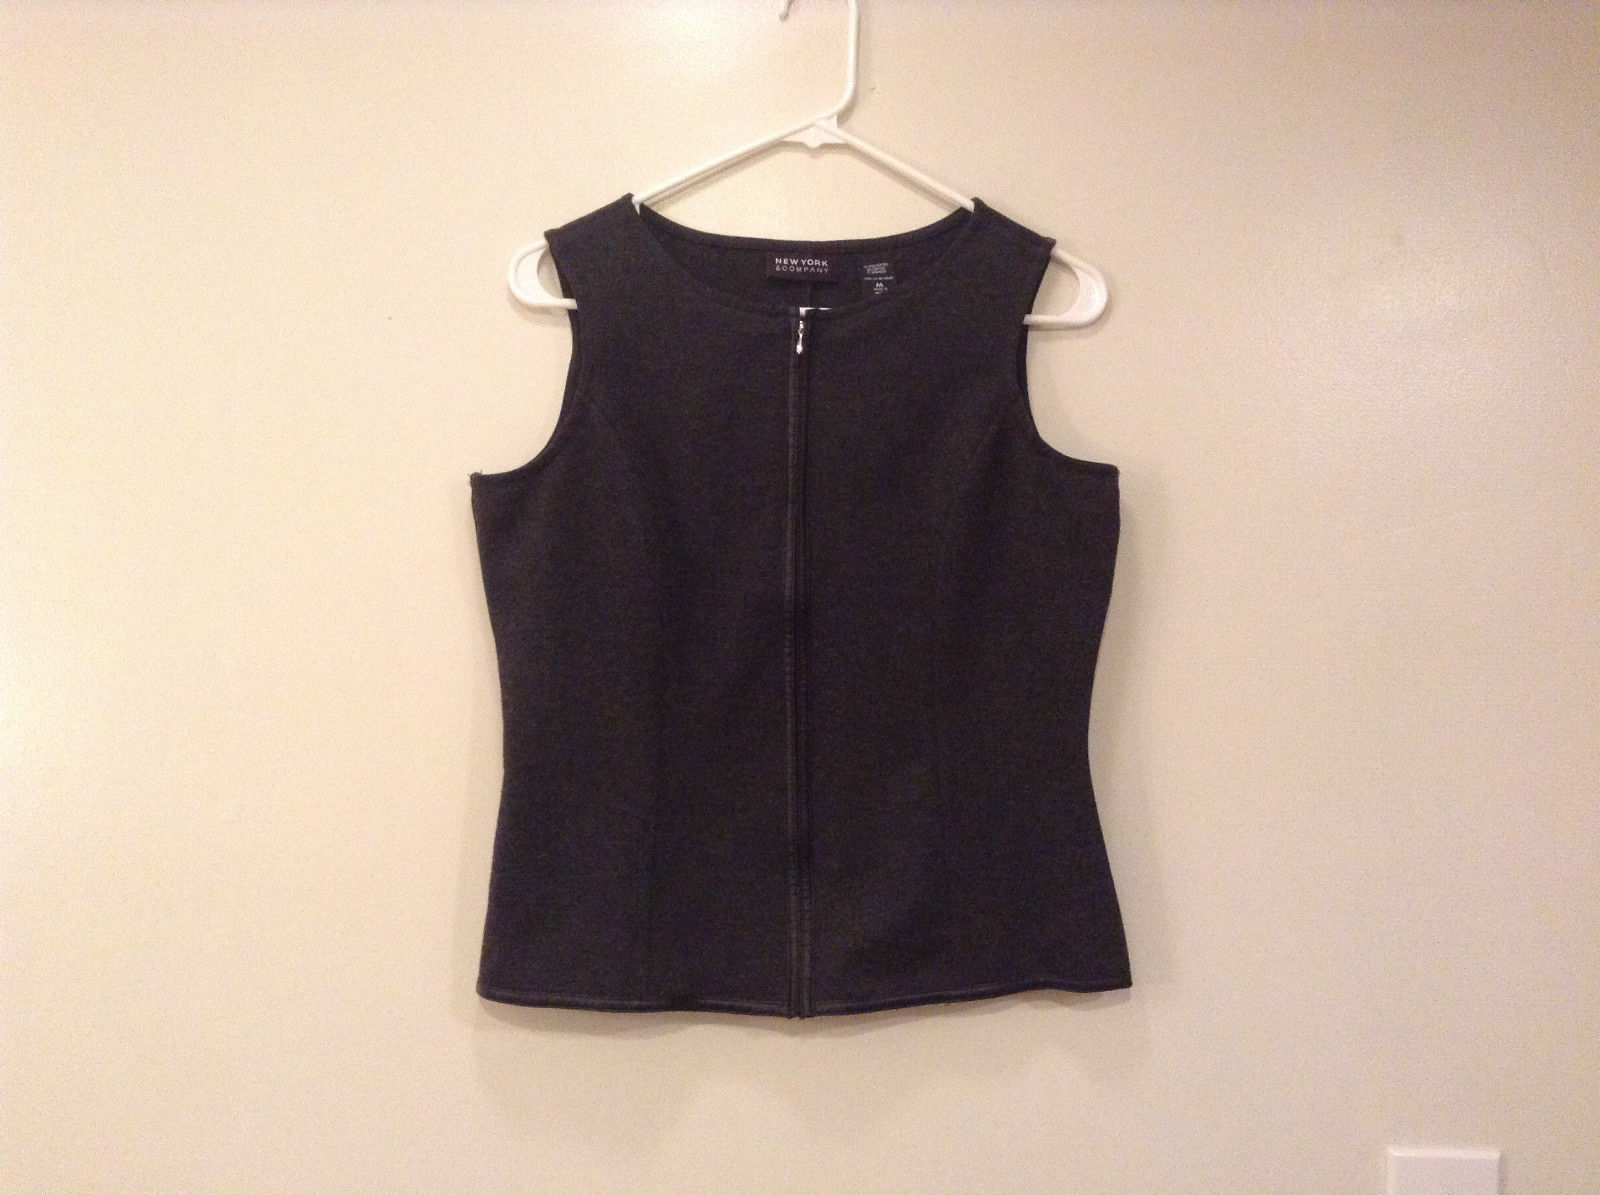 Dark Gray New York and Company Sleeveless Vest Size M Front Zipper Closure